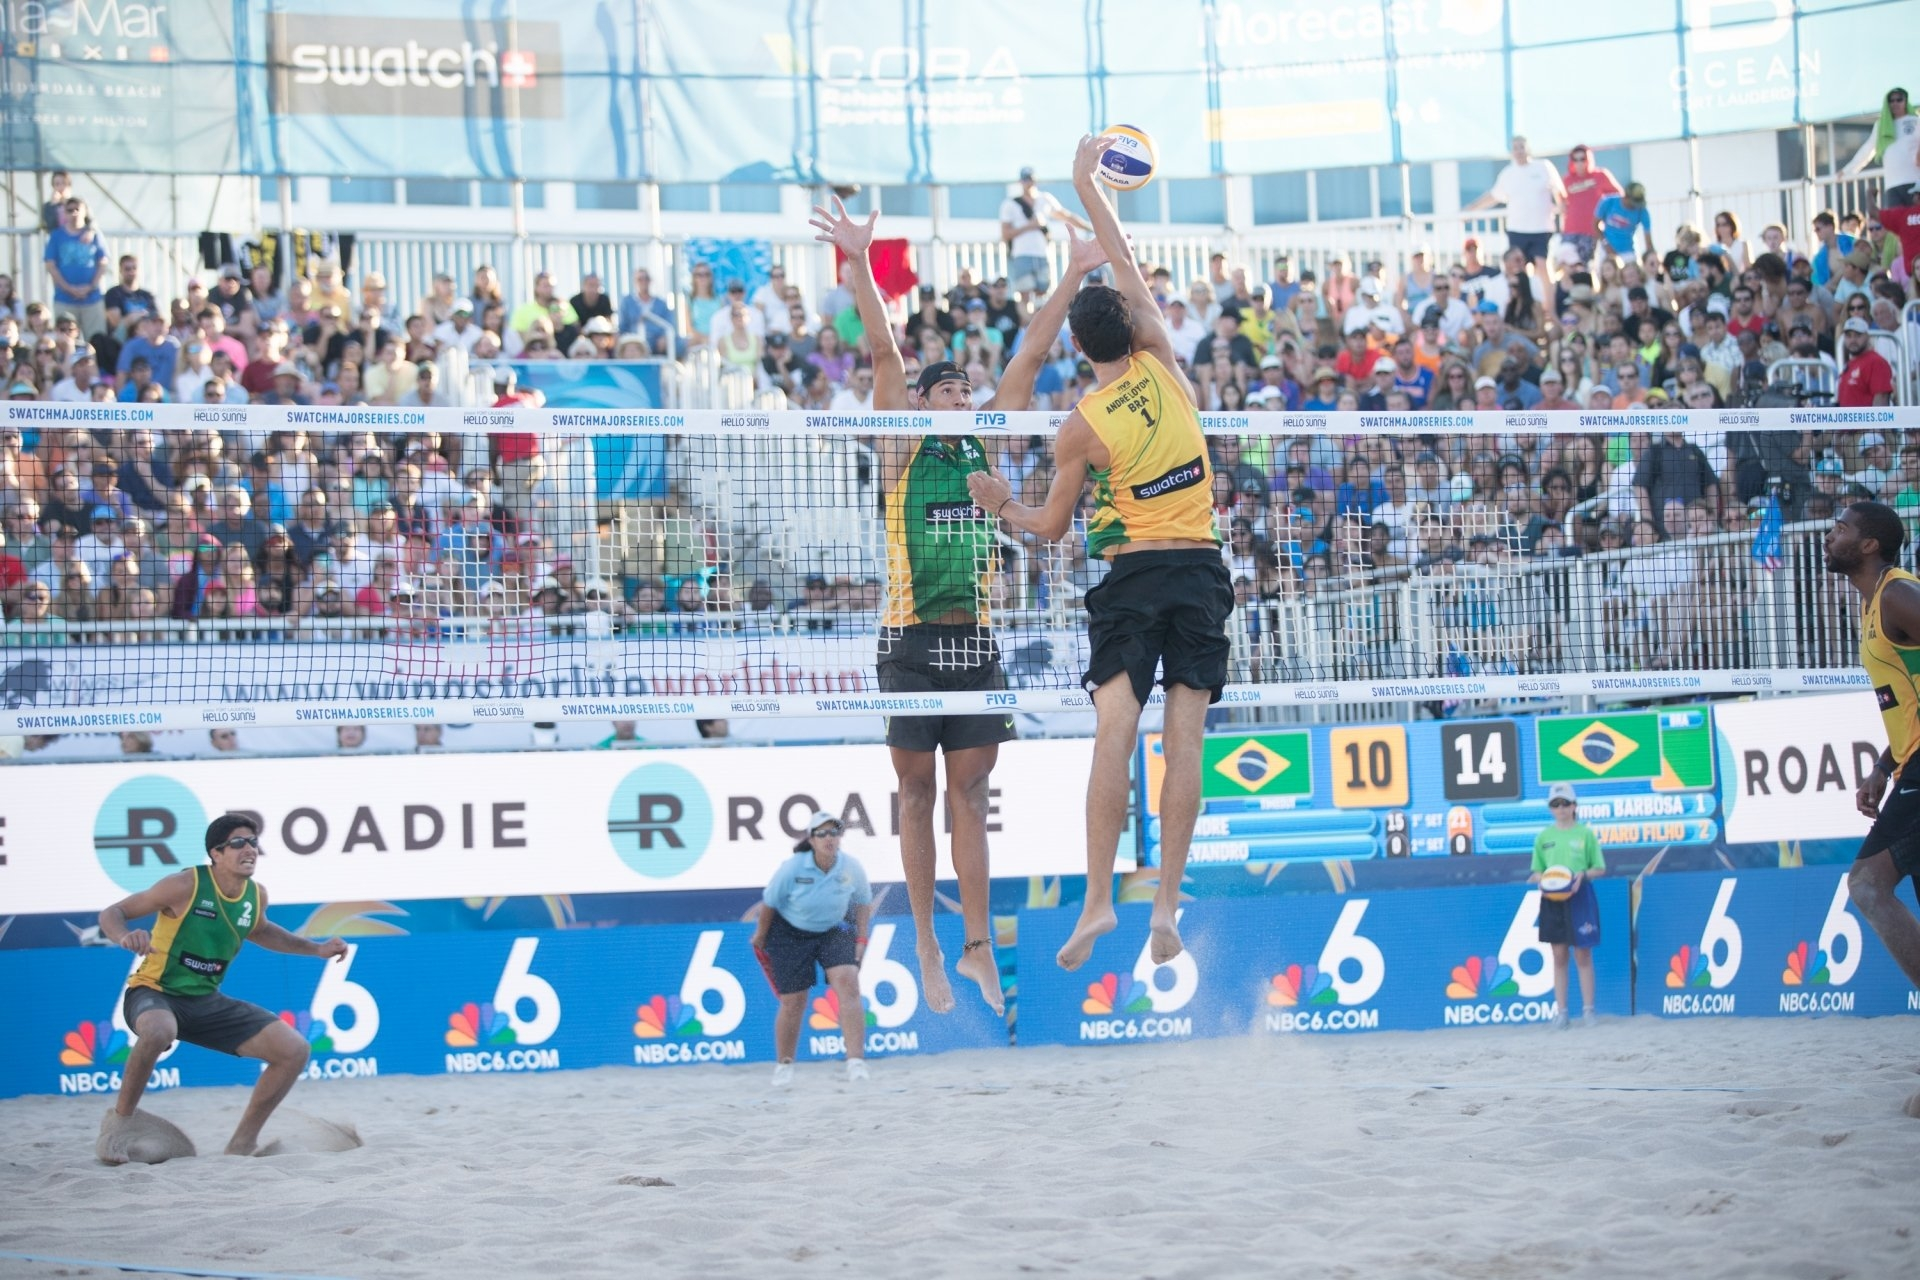 Alvaro and Saymon prevailed over soon-to-be world champions Evandro and Andre in an All-Brazilian final in the #FTLMajor